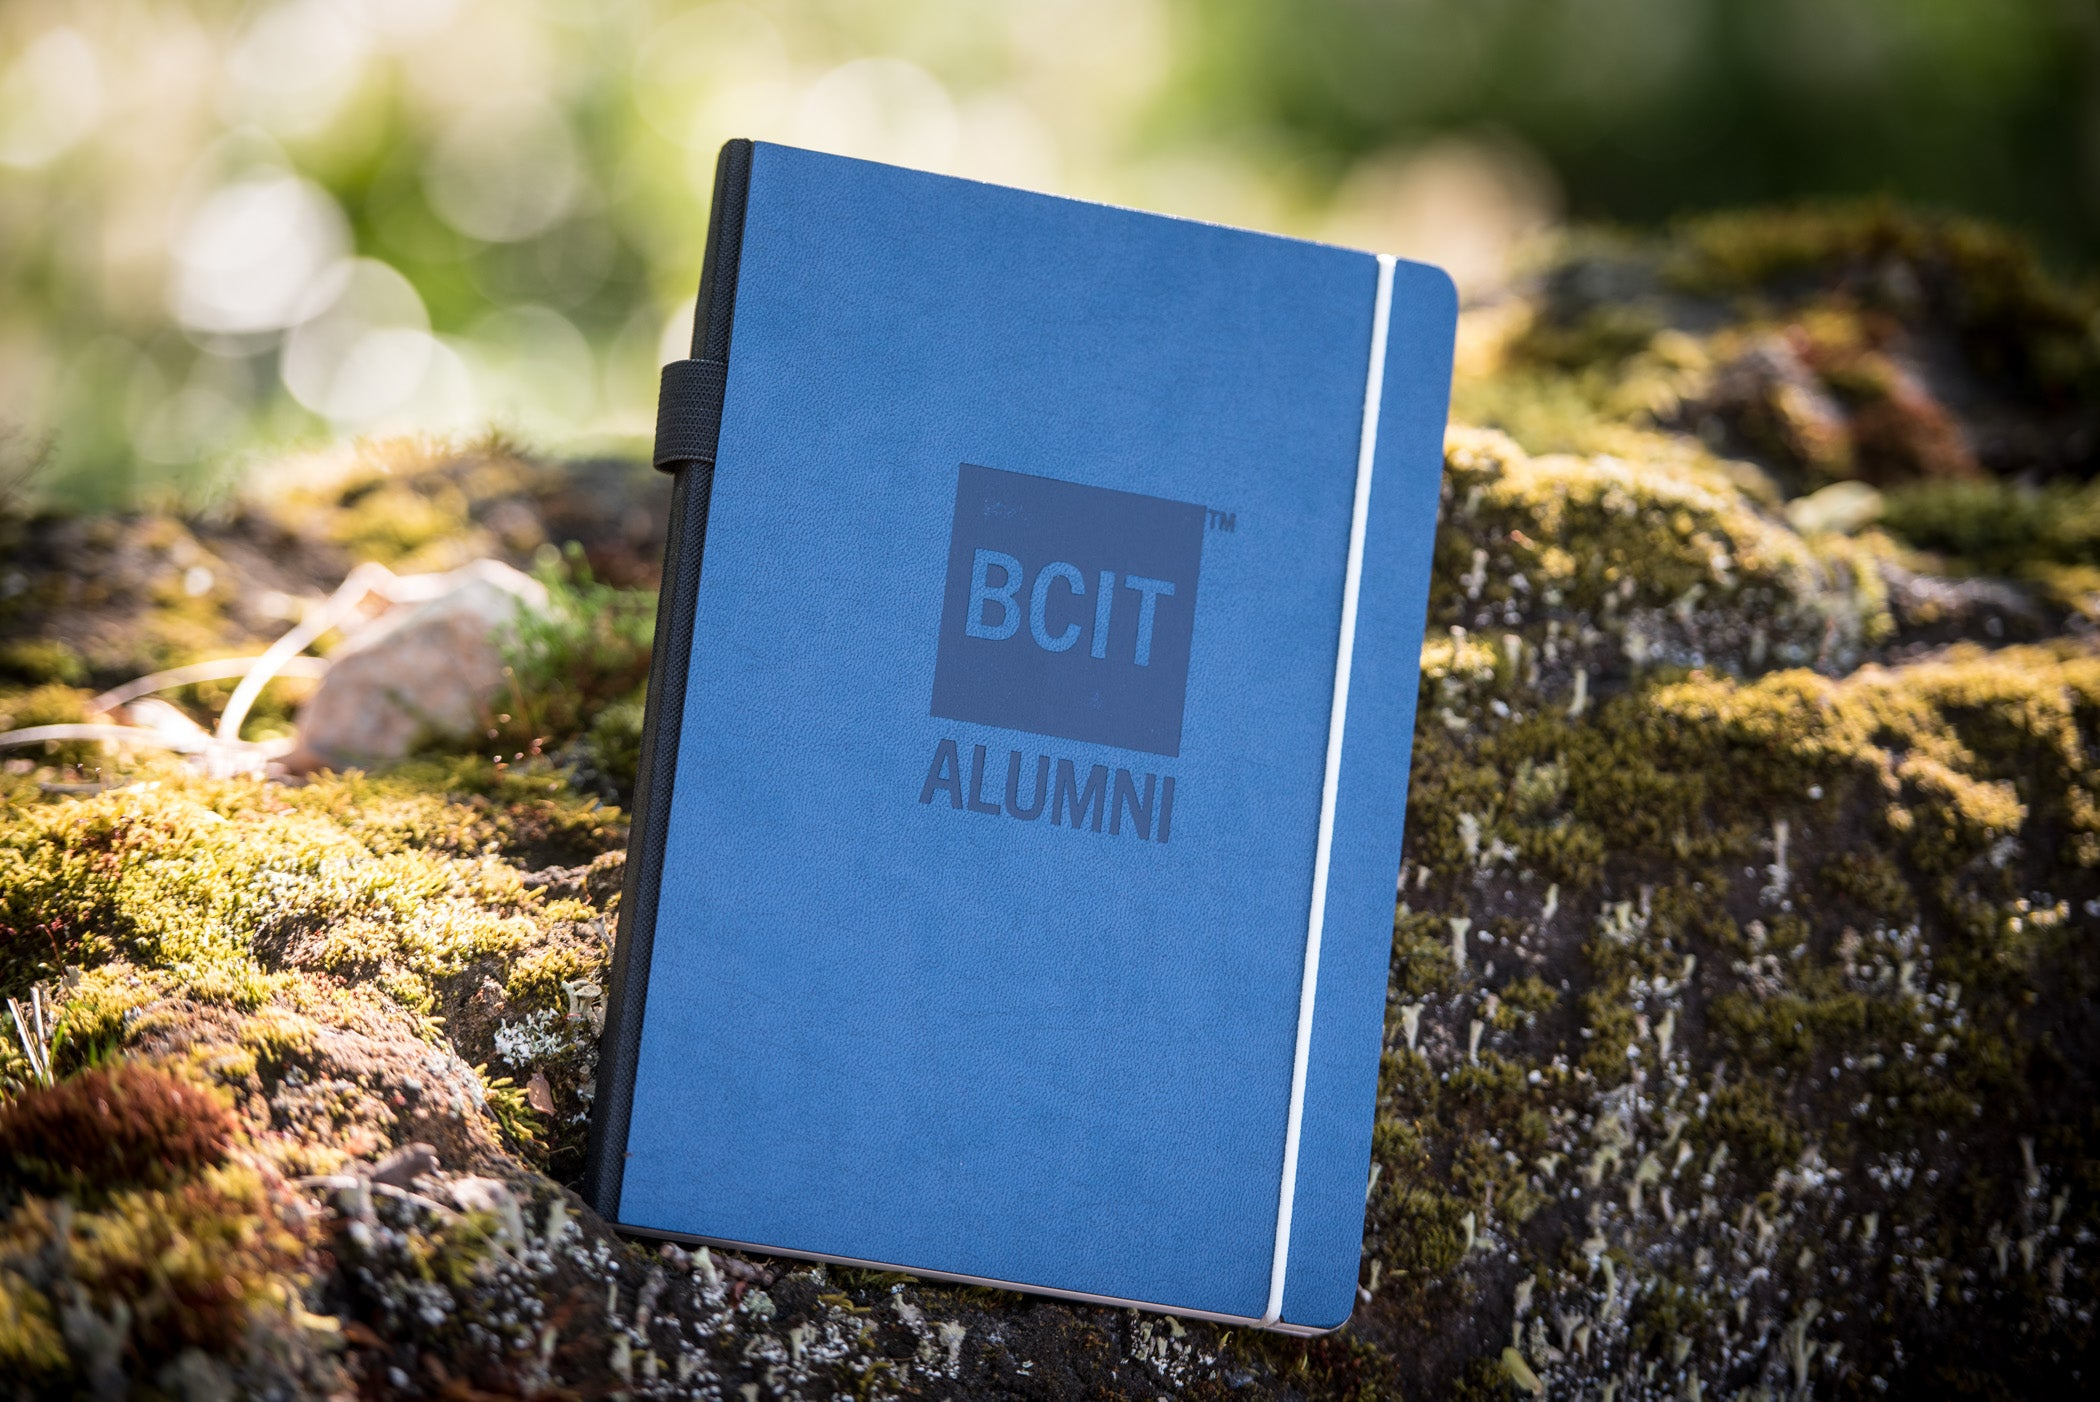 BCIT Alumni - Contempo Bookbound Journal